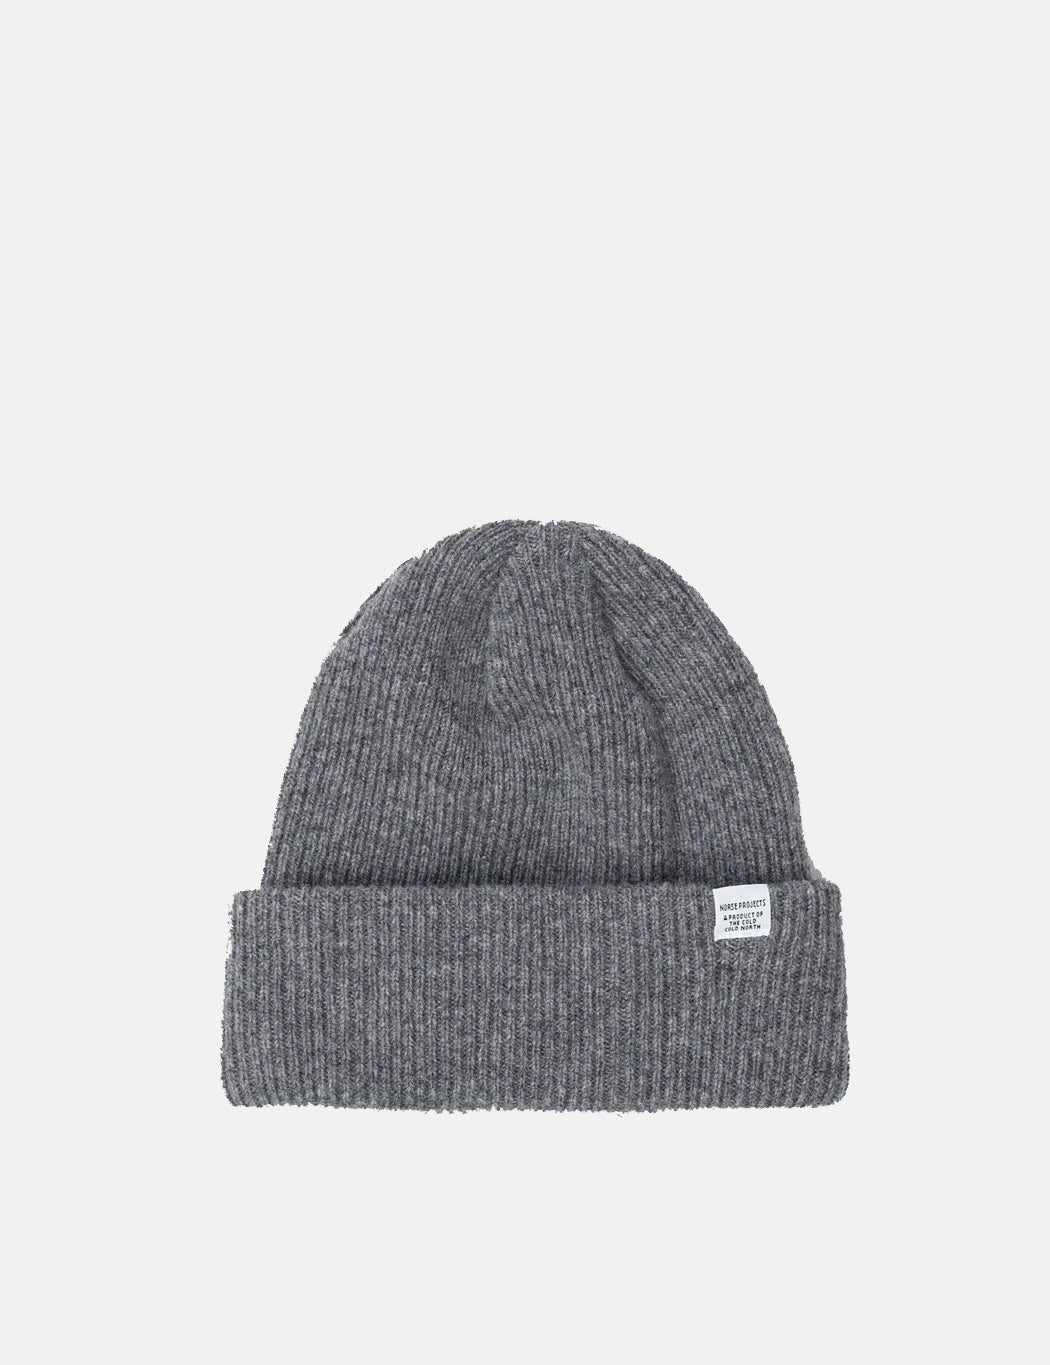 cd1ef7edc96 Norse Projects Norse Beanie Hat in Light Grey Melange